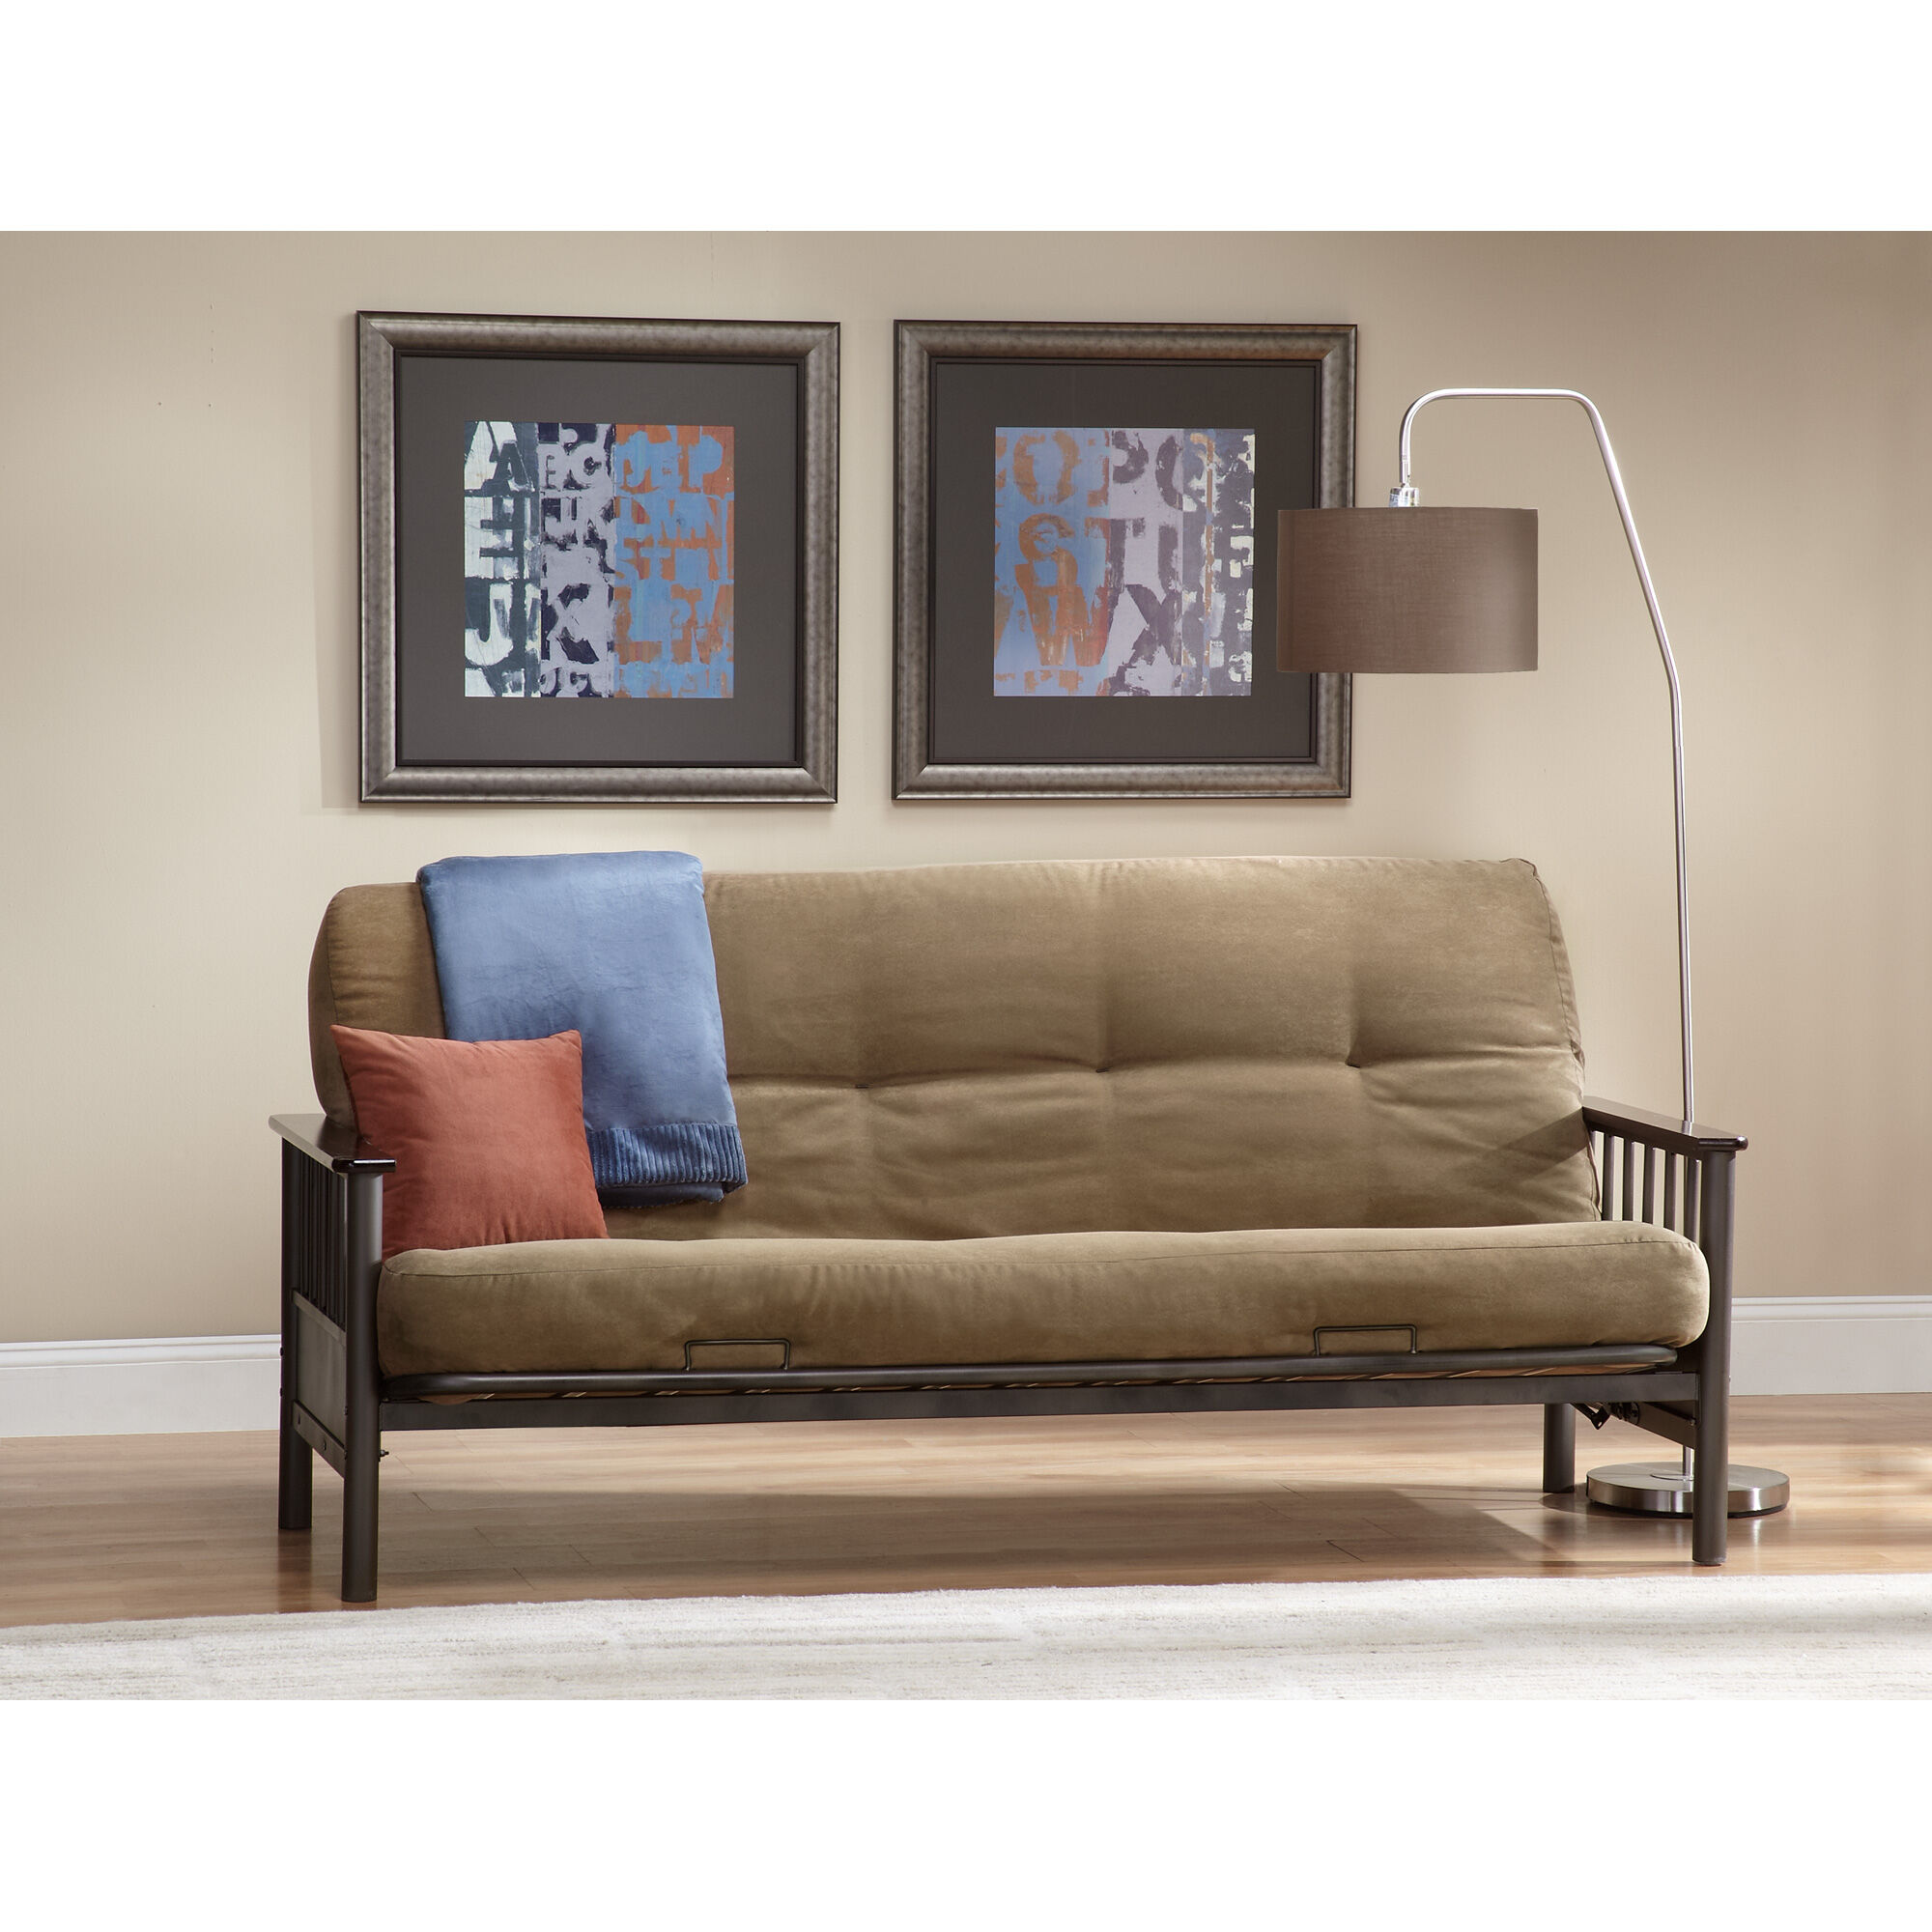 Slumberland Furniture Wellsboro Metal Futon Frame